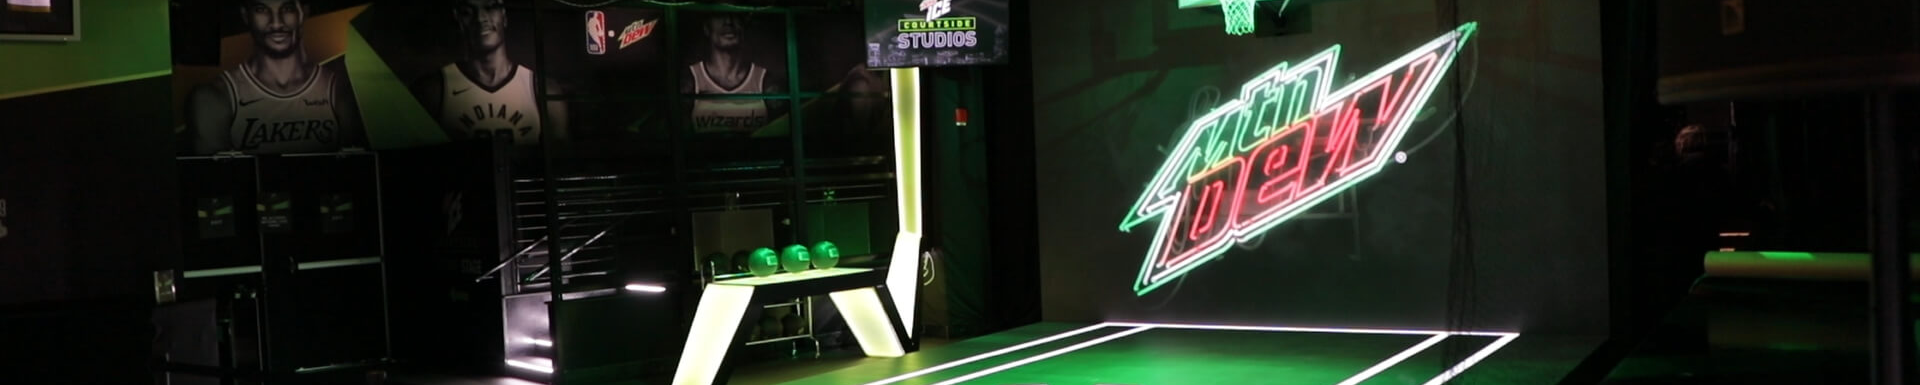 Mountain Dew Courtside Studios